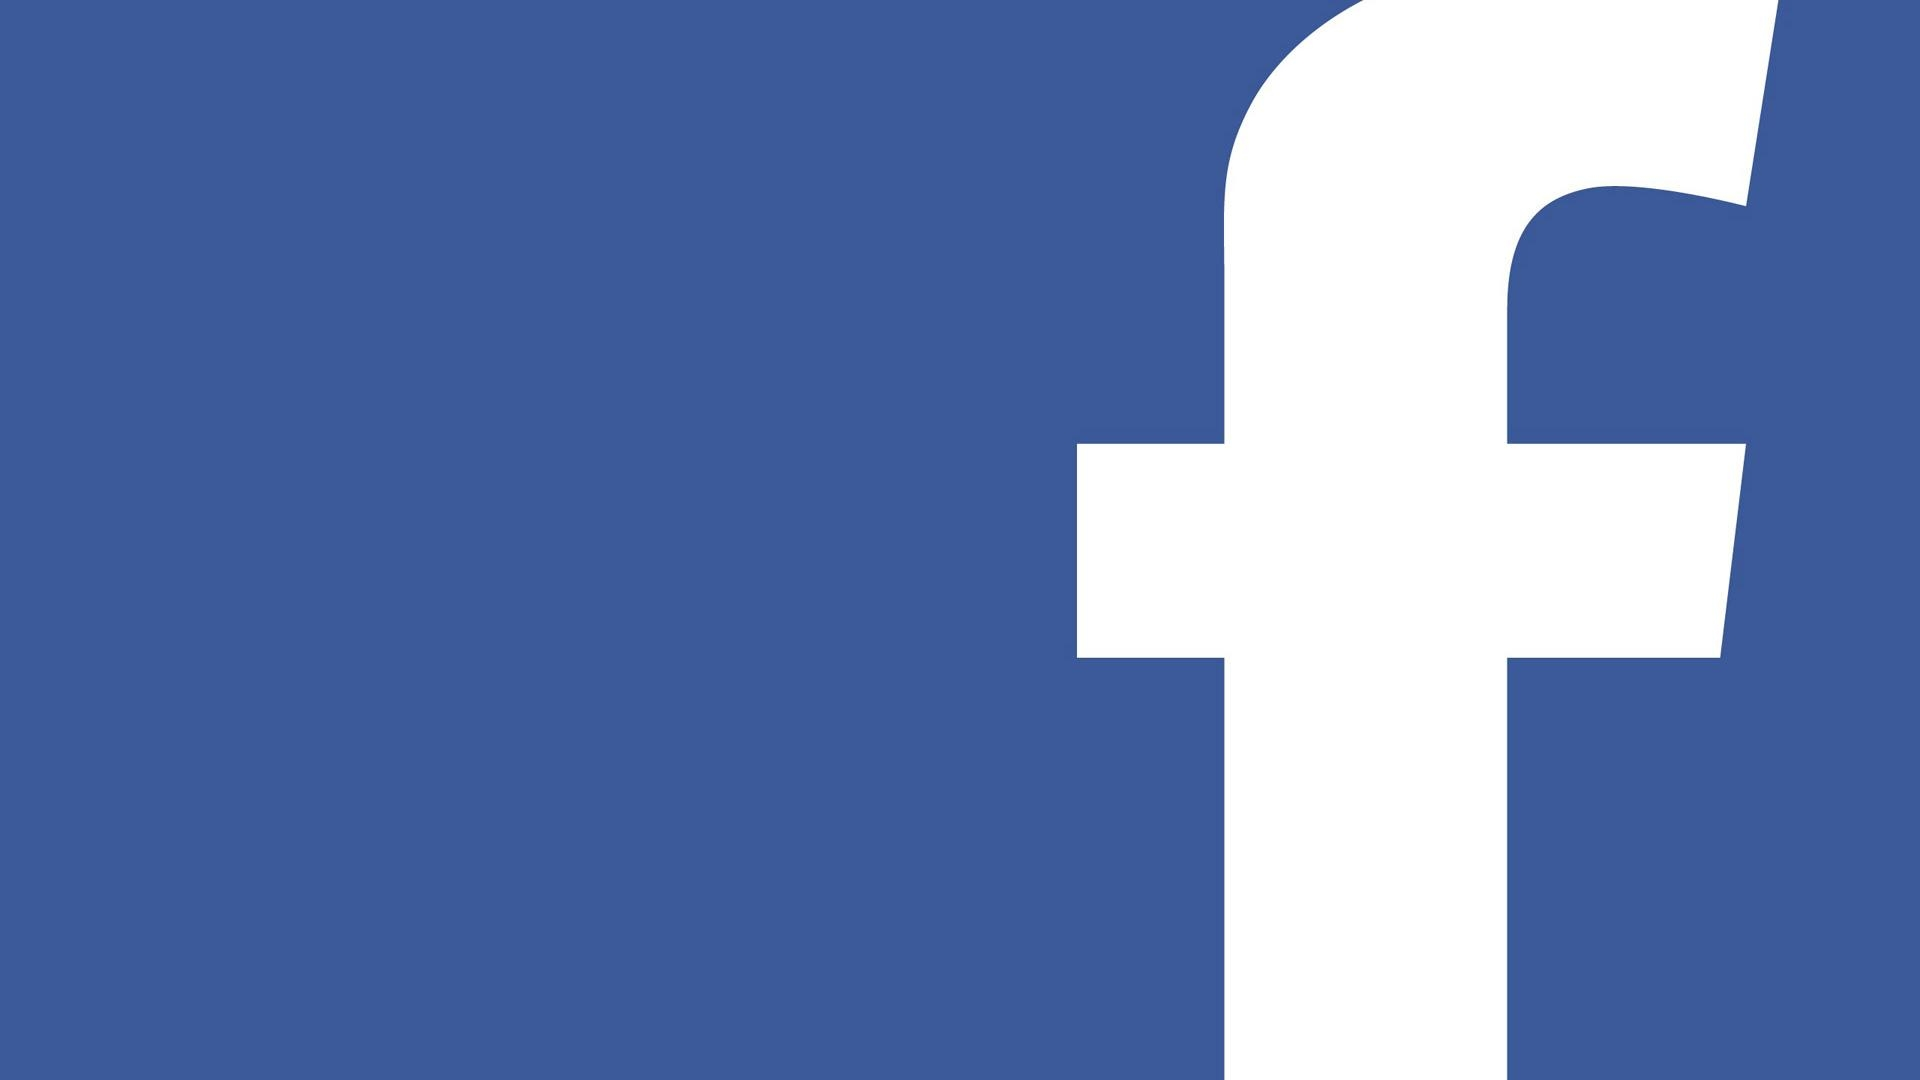 download facebook logo hd wallpaper 62728 1920x1080 px high rh hdwallsource com high quality facebook logo high resolution facebook logo eps